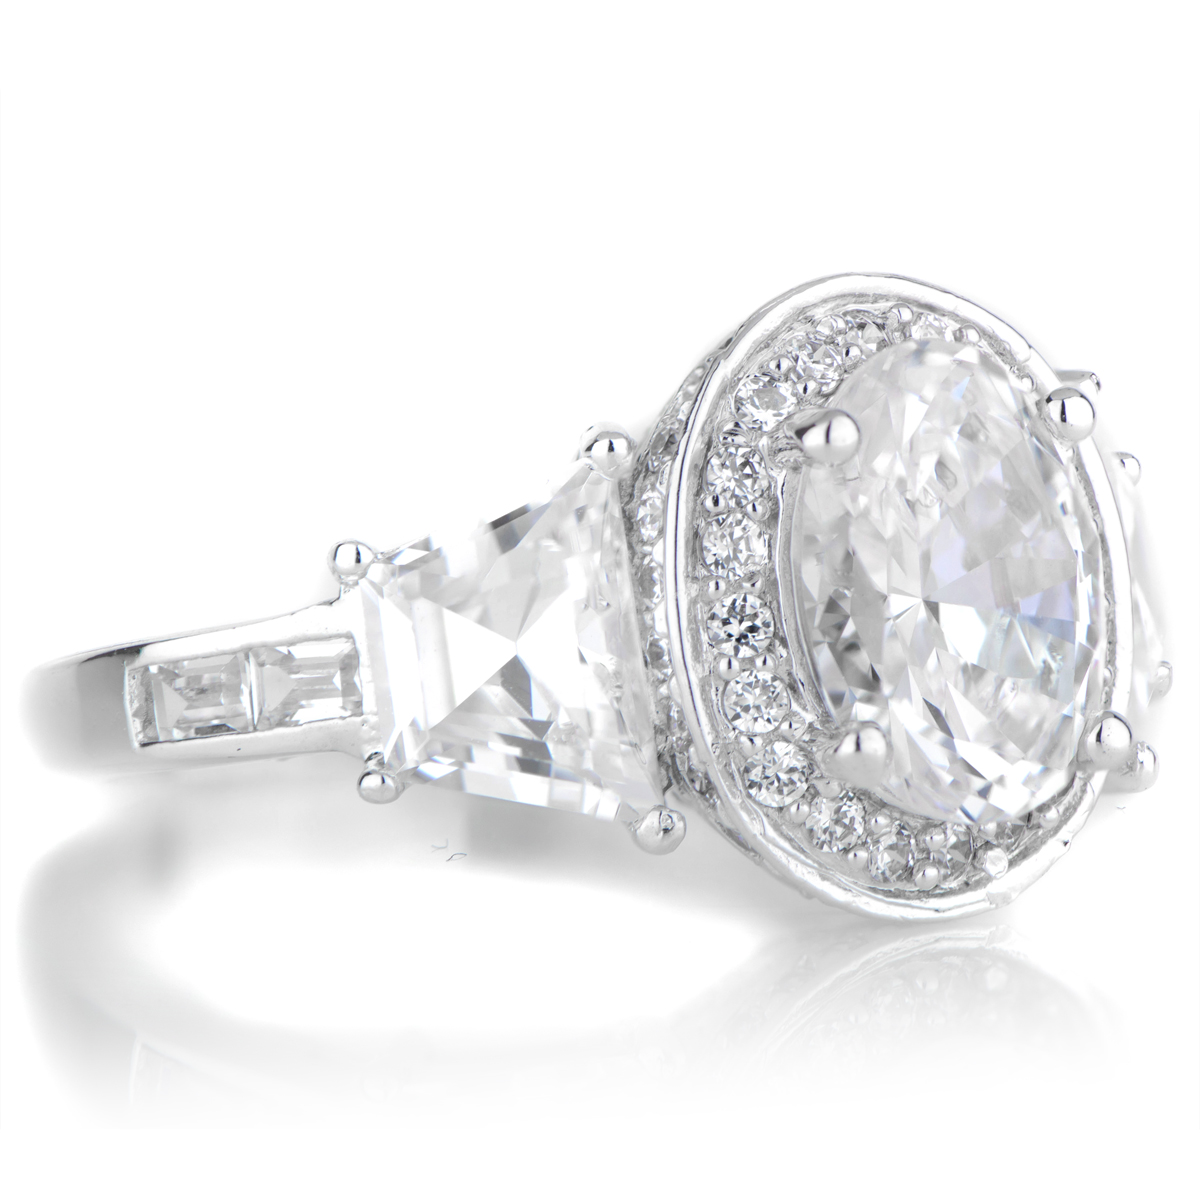 Lula's Oval Cut 3 Stone Engagement Ring